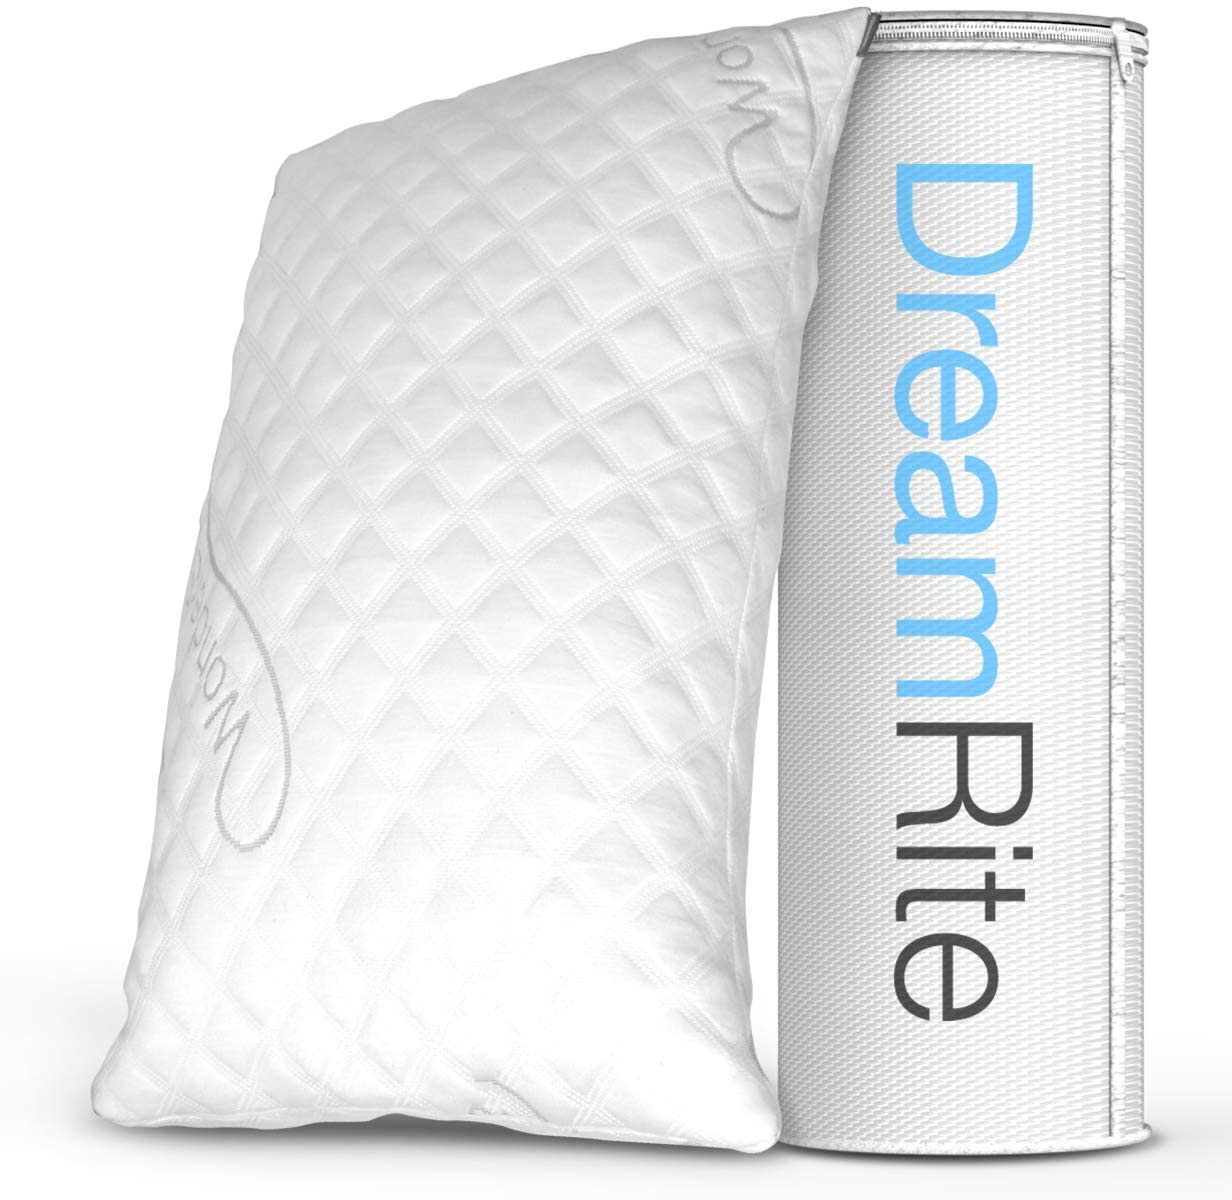 WonderSleep Dream Rite Shredded Hypoallergenic Memory Foam Hotel Pillow